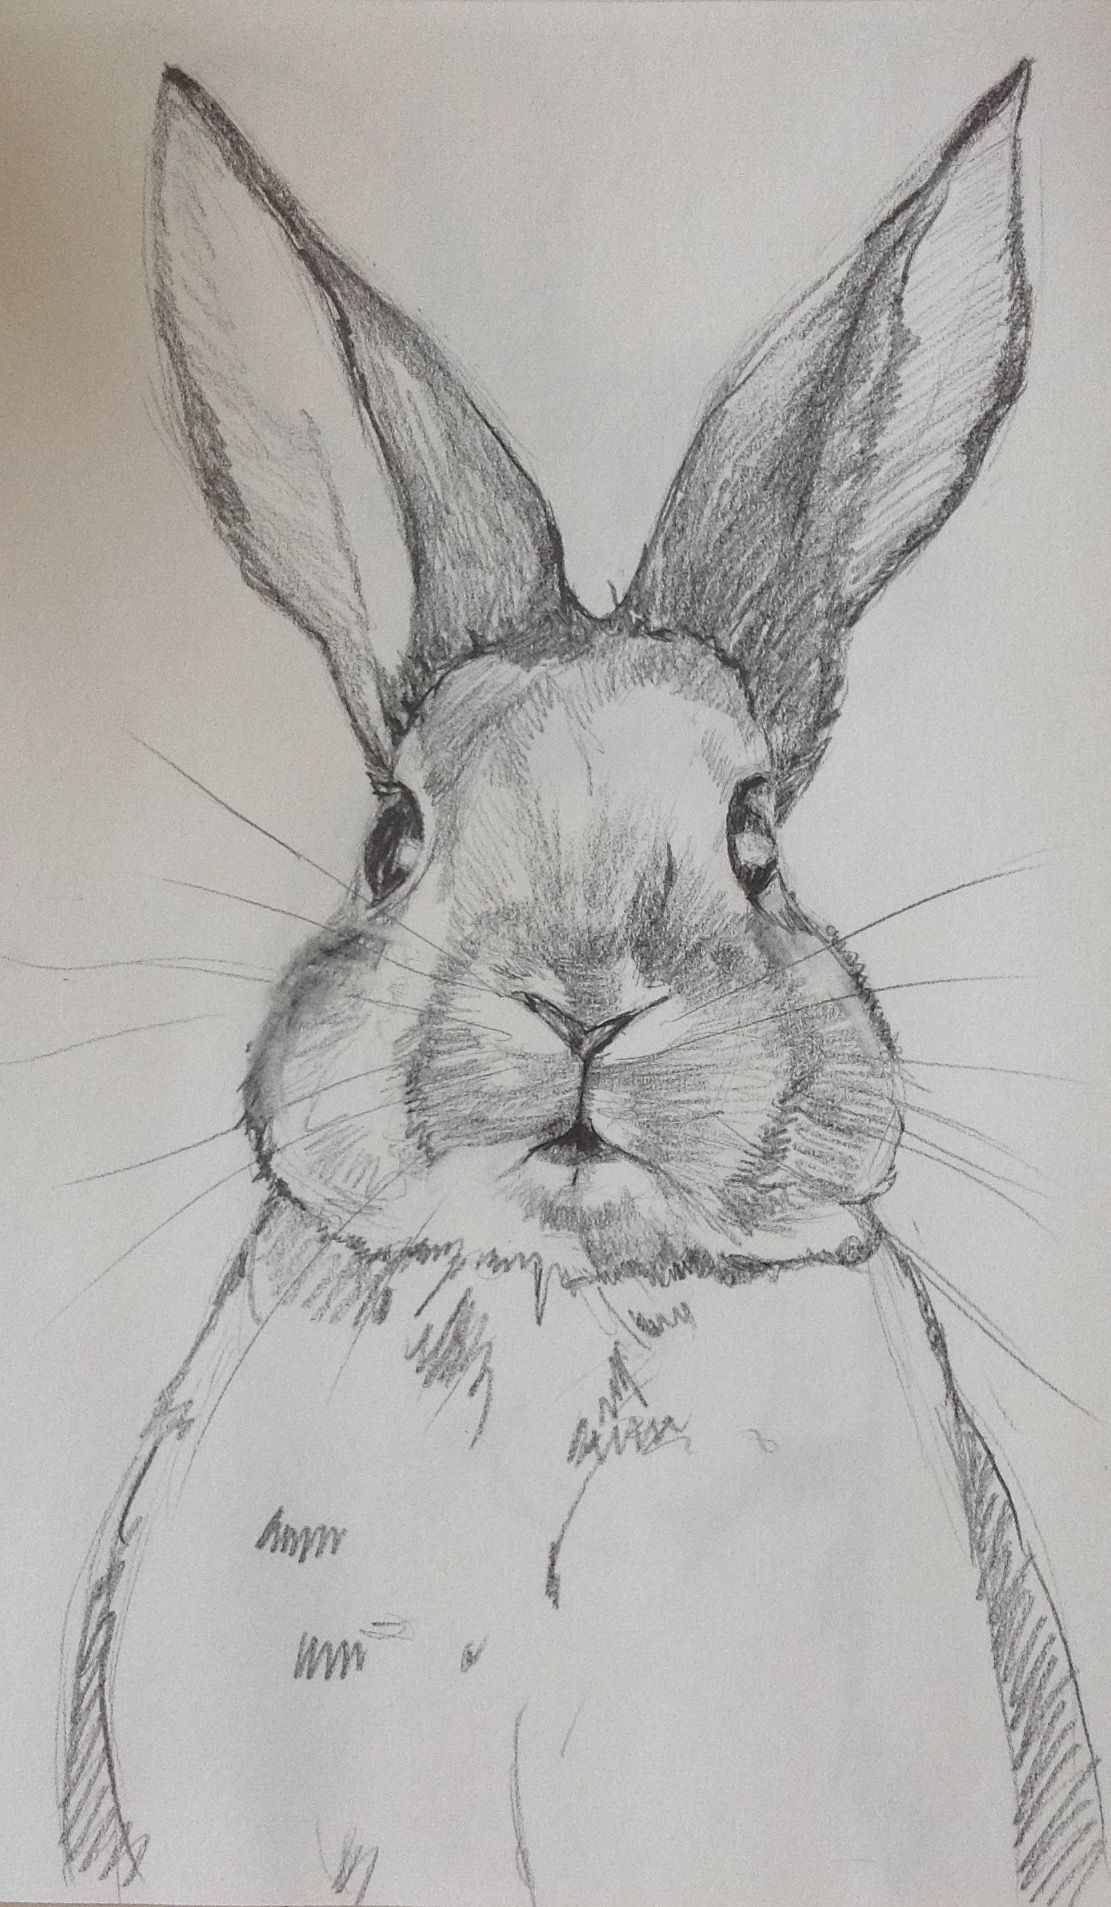 Pencil sketch. Sweet bunny. By Joan Ines Studio.